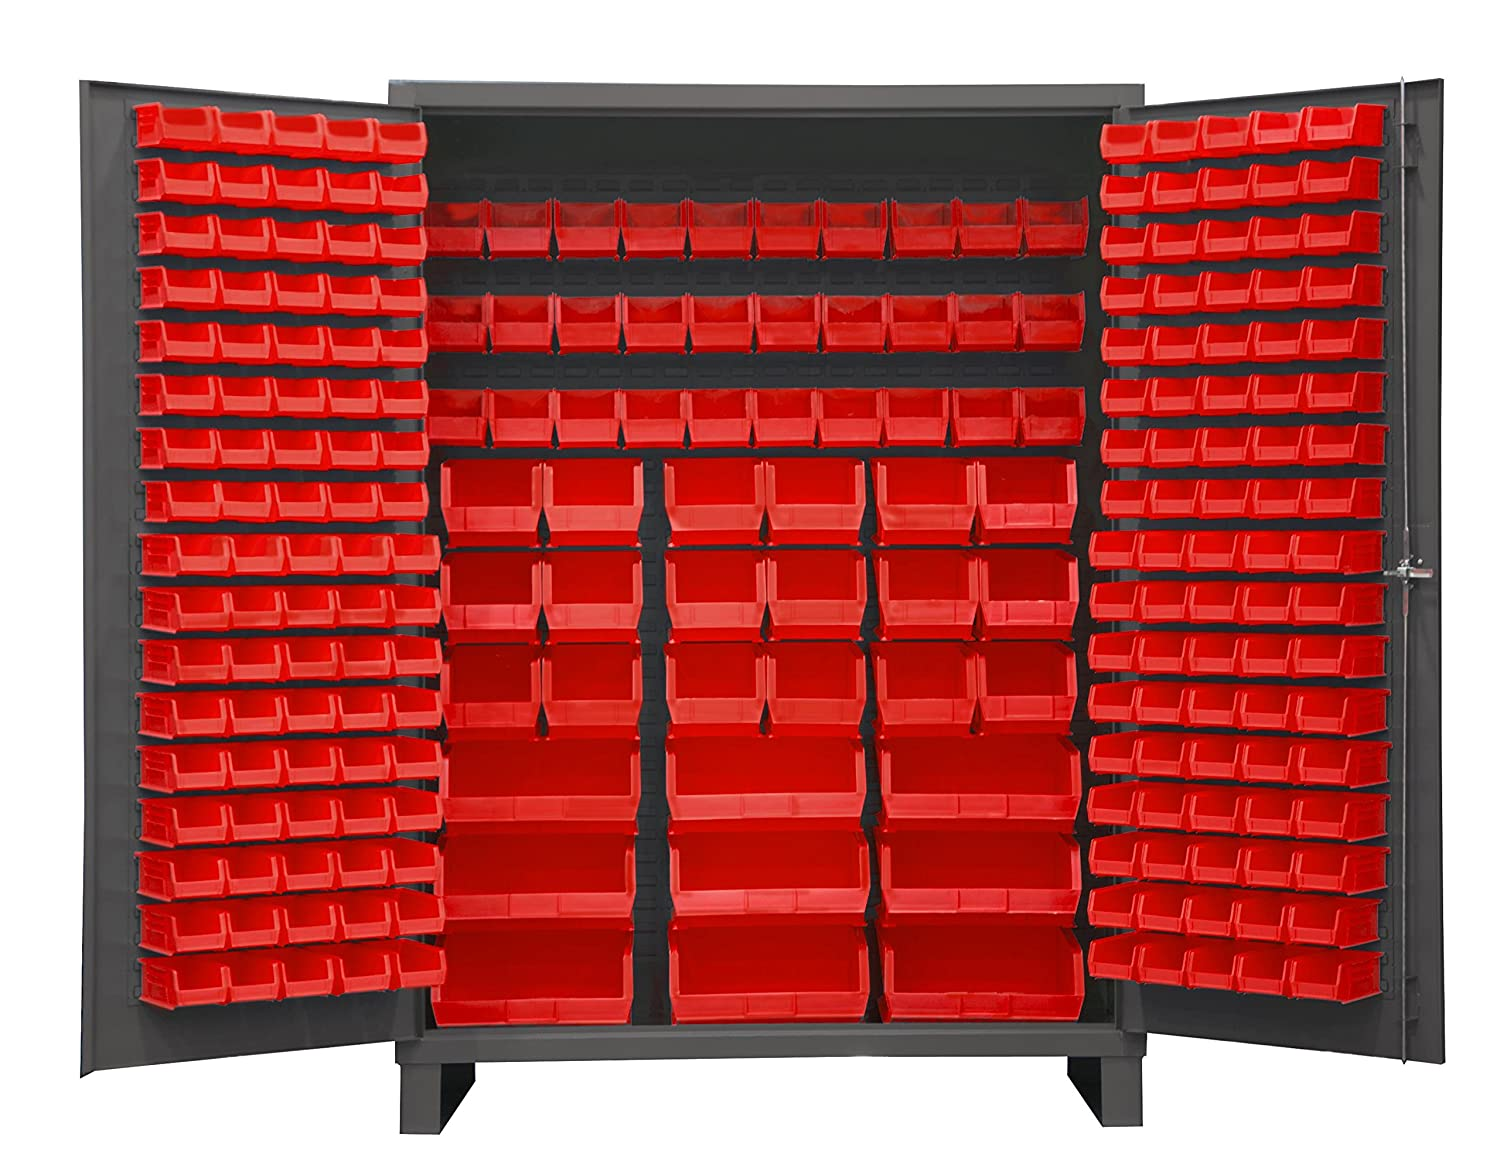 "Durham SSC-227-1795 Lockable Cabinet with 227 Red Hook-On Bins, Flush Door Style, 60"" Wide, 14 Gauge, Gray"